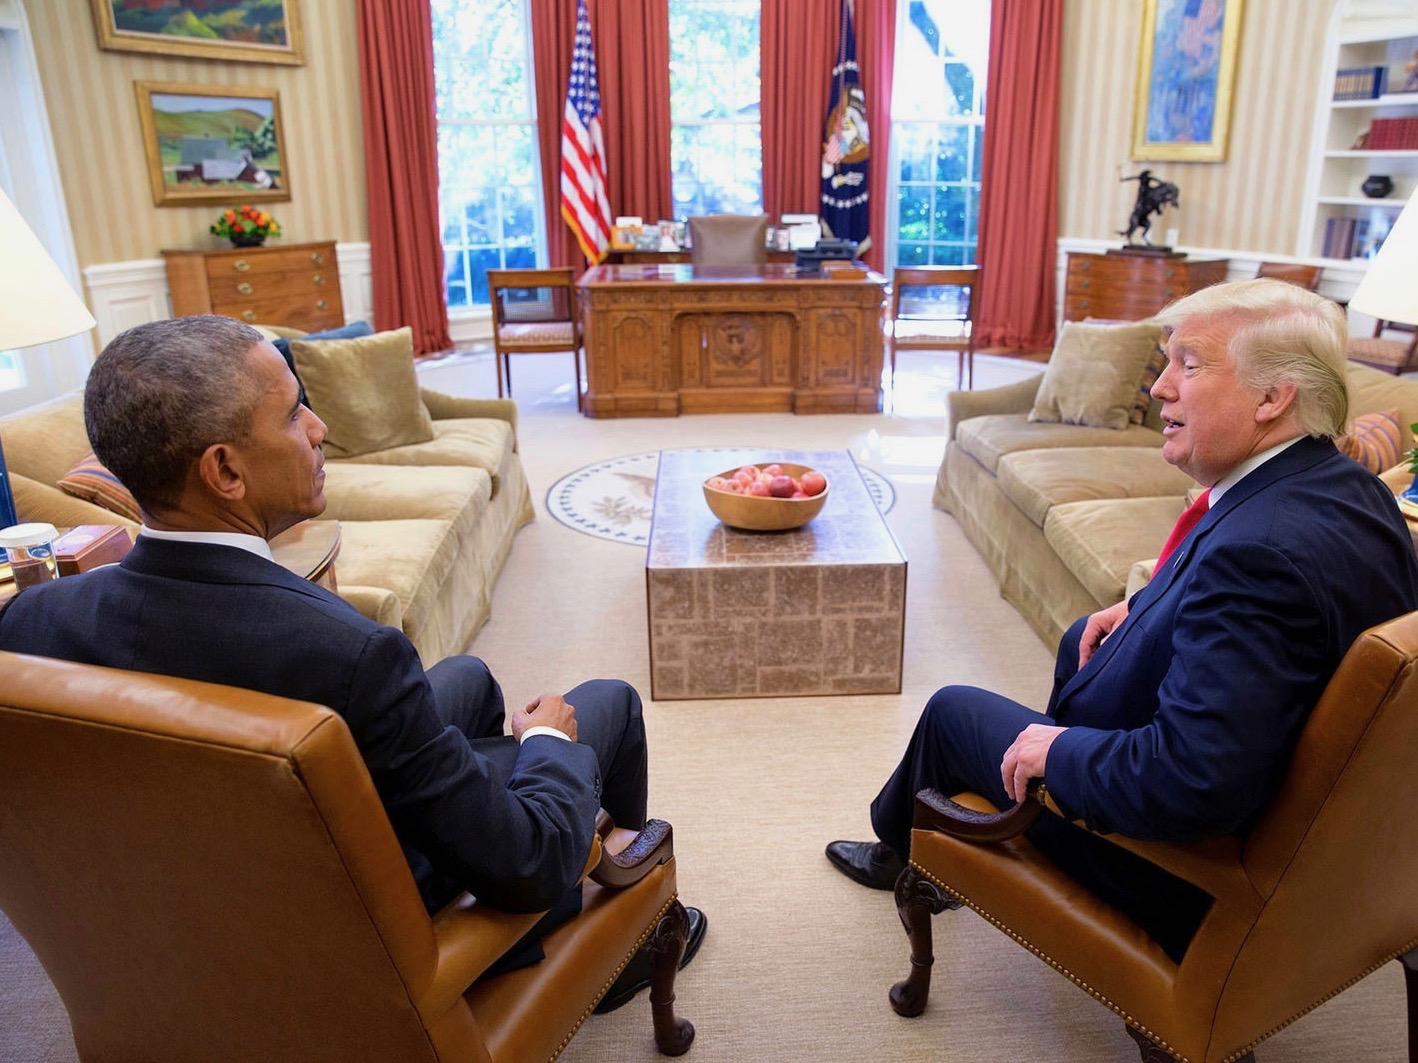 President Barack Obama meets Donald Trump in the White House Oval Office before Trump's inauguration. (Pete Souza/White House)